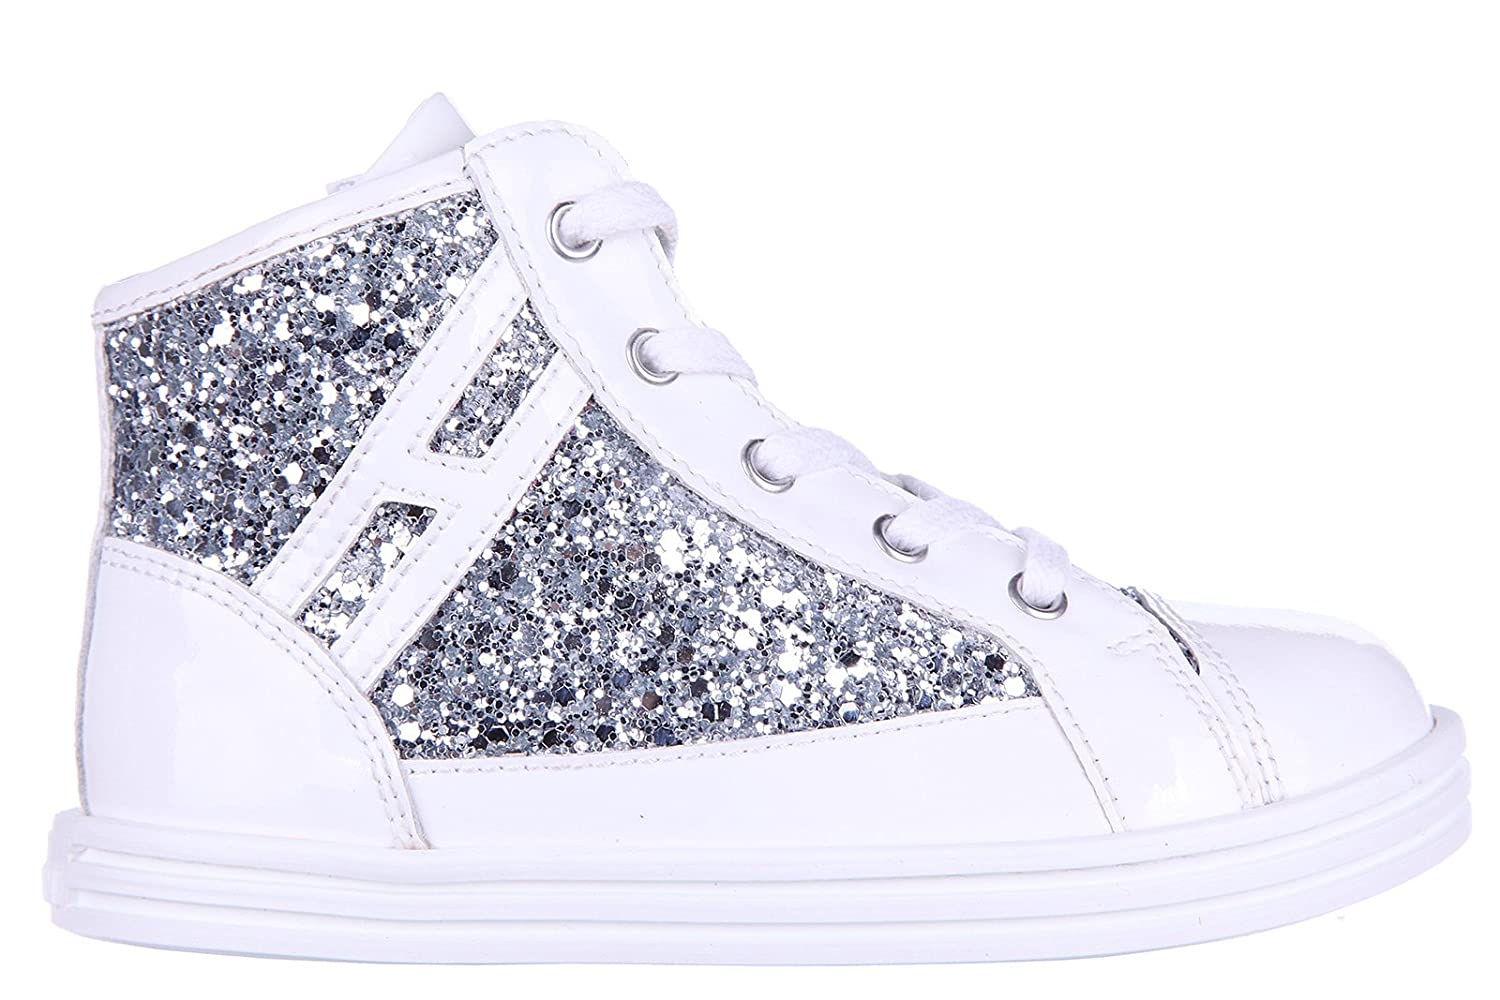 separation shoes d6c49 42299 Hogan Rebel Girls Shoes Baby Child high top Leather Sneakers ...